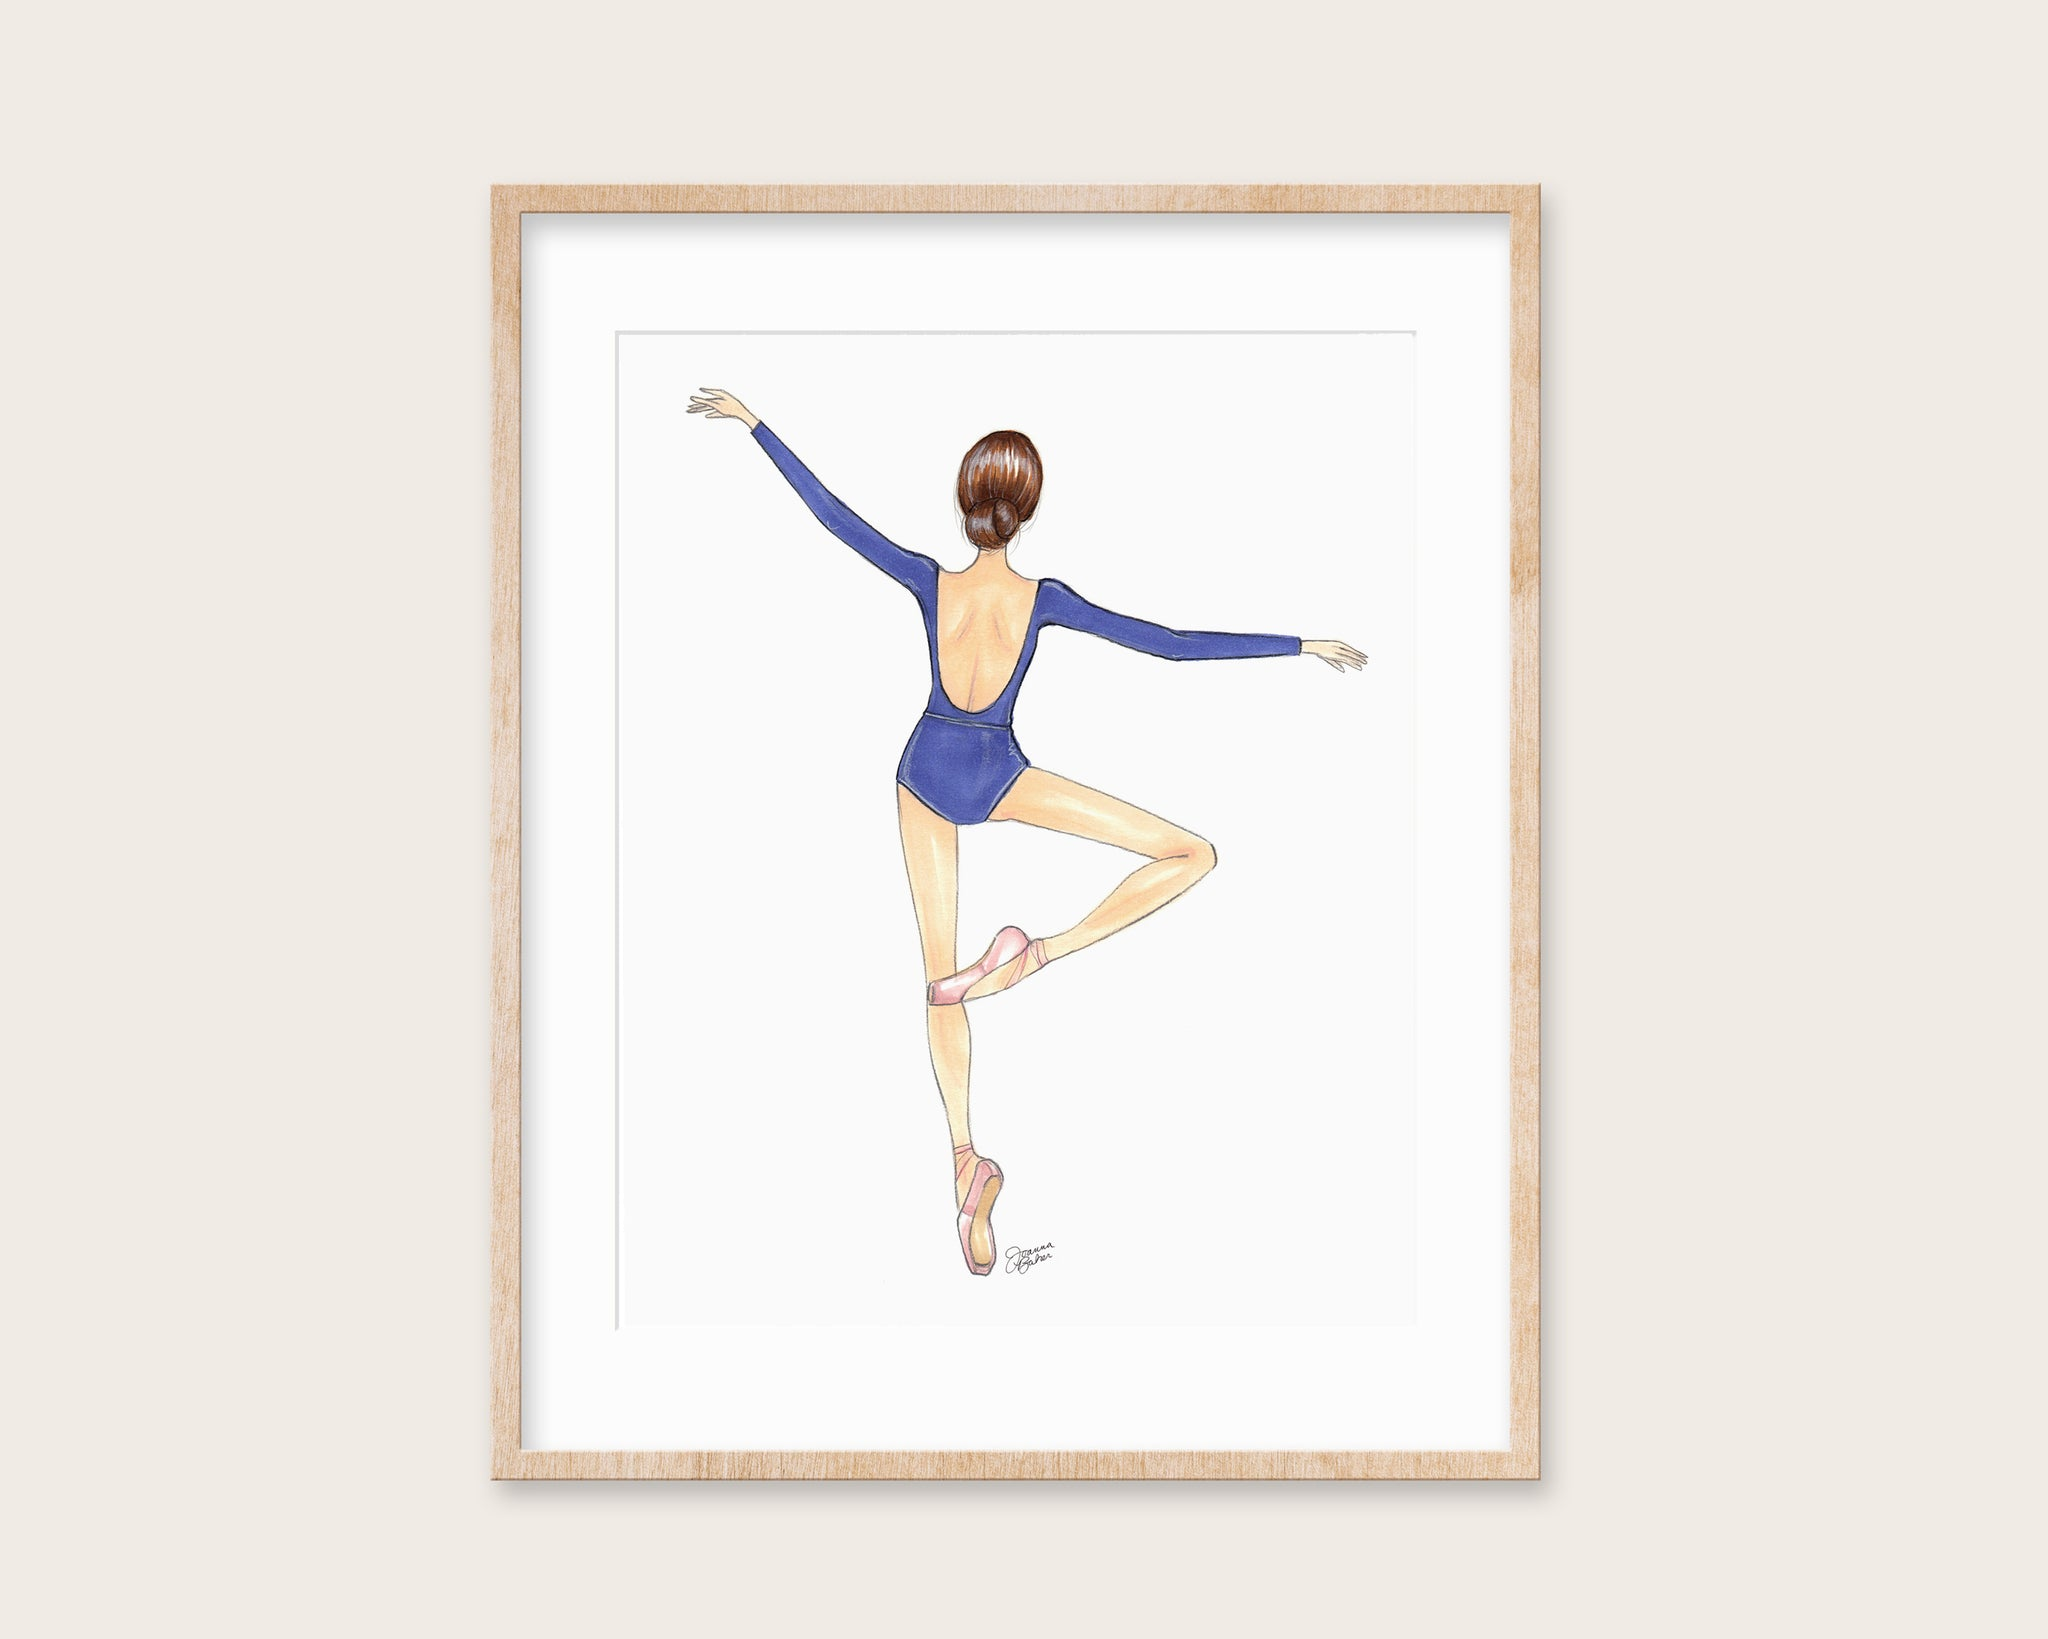 Blue Ballerina Fashion Illustration Art Print